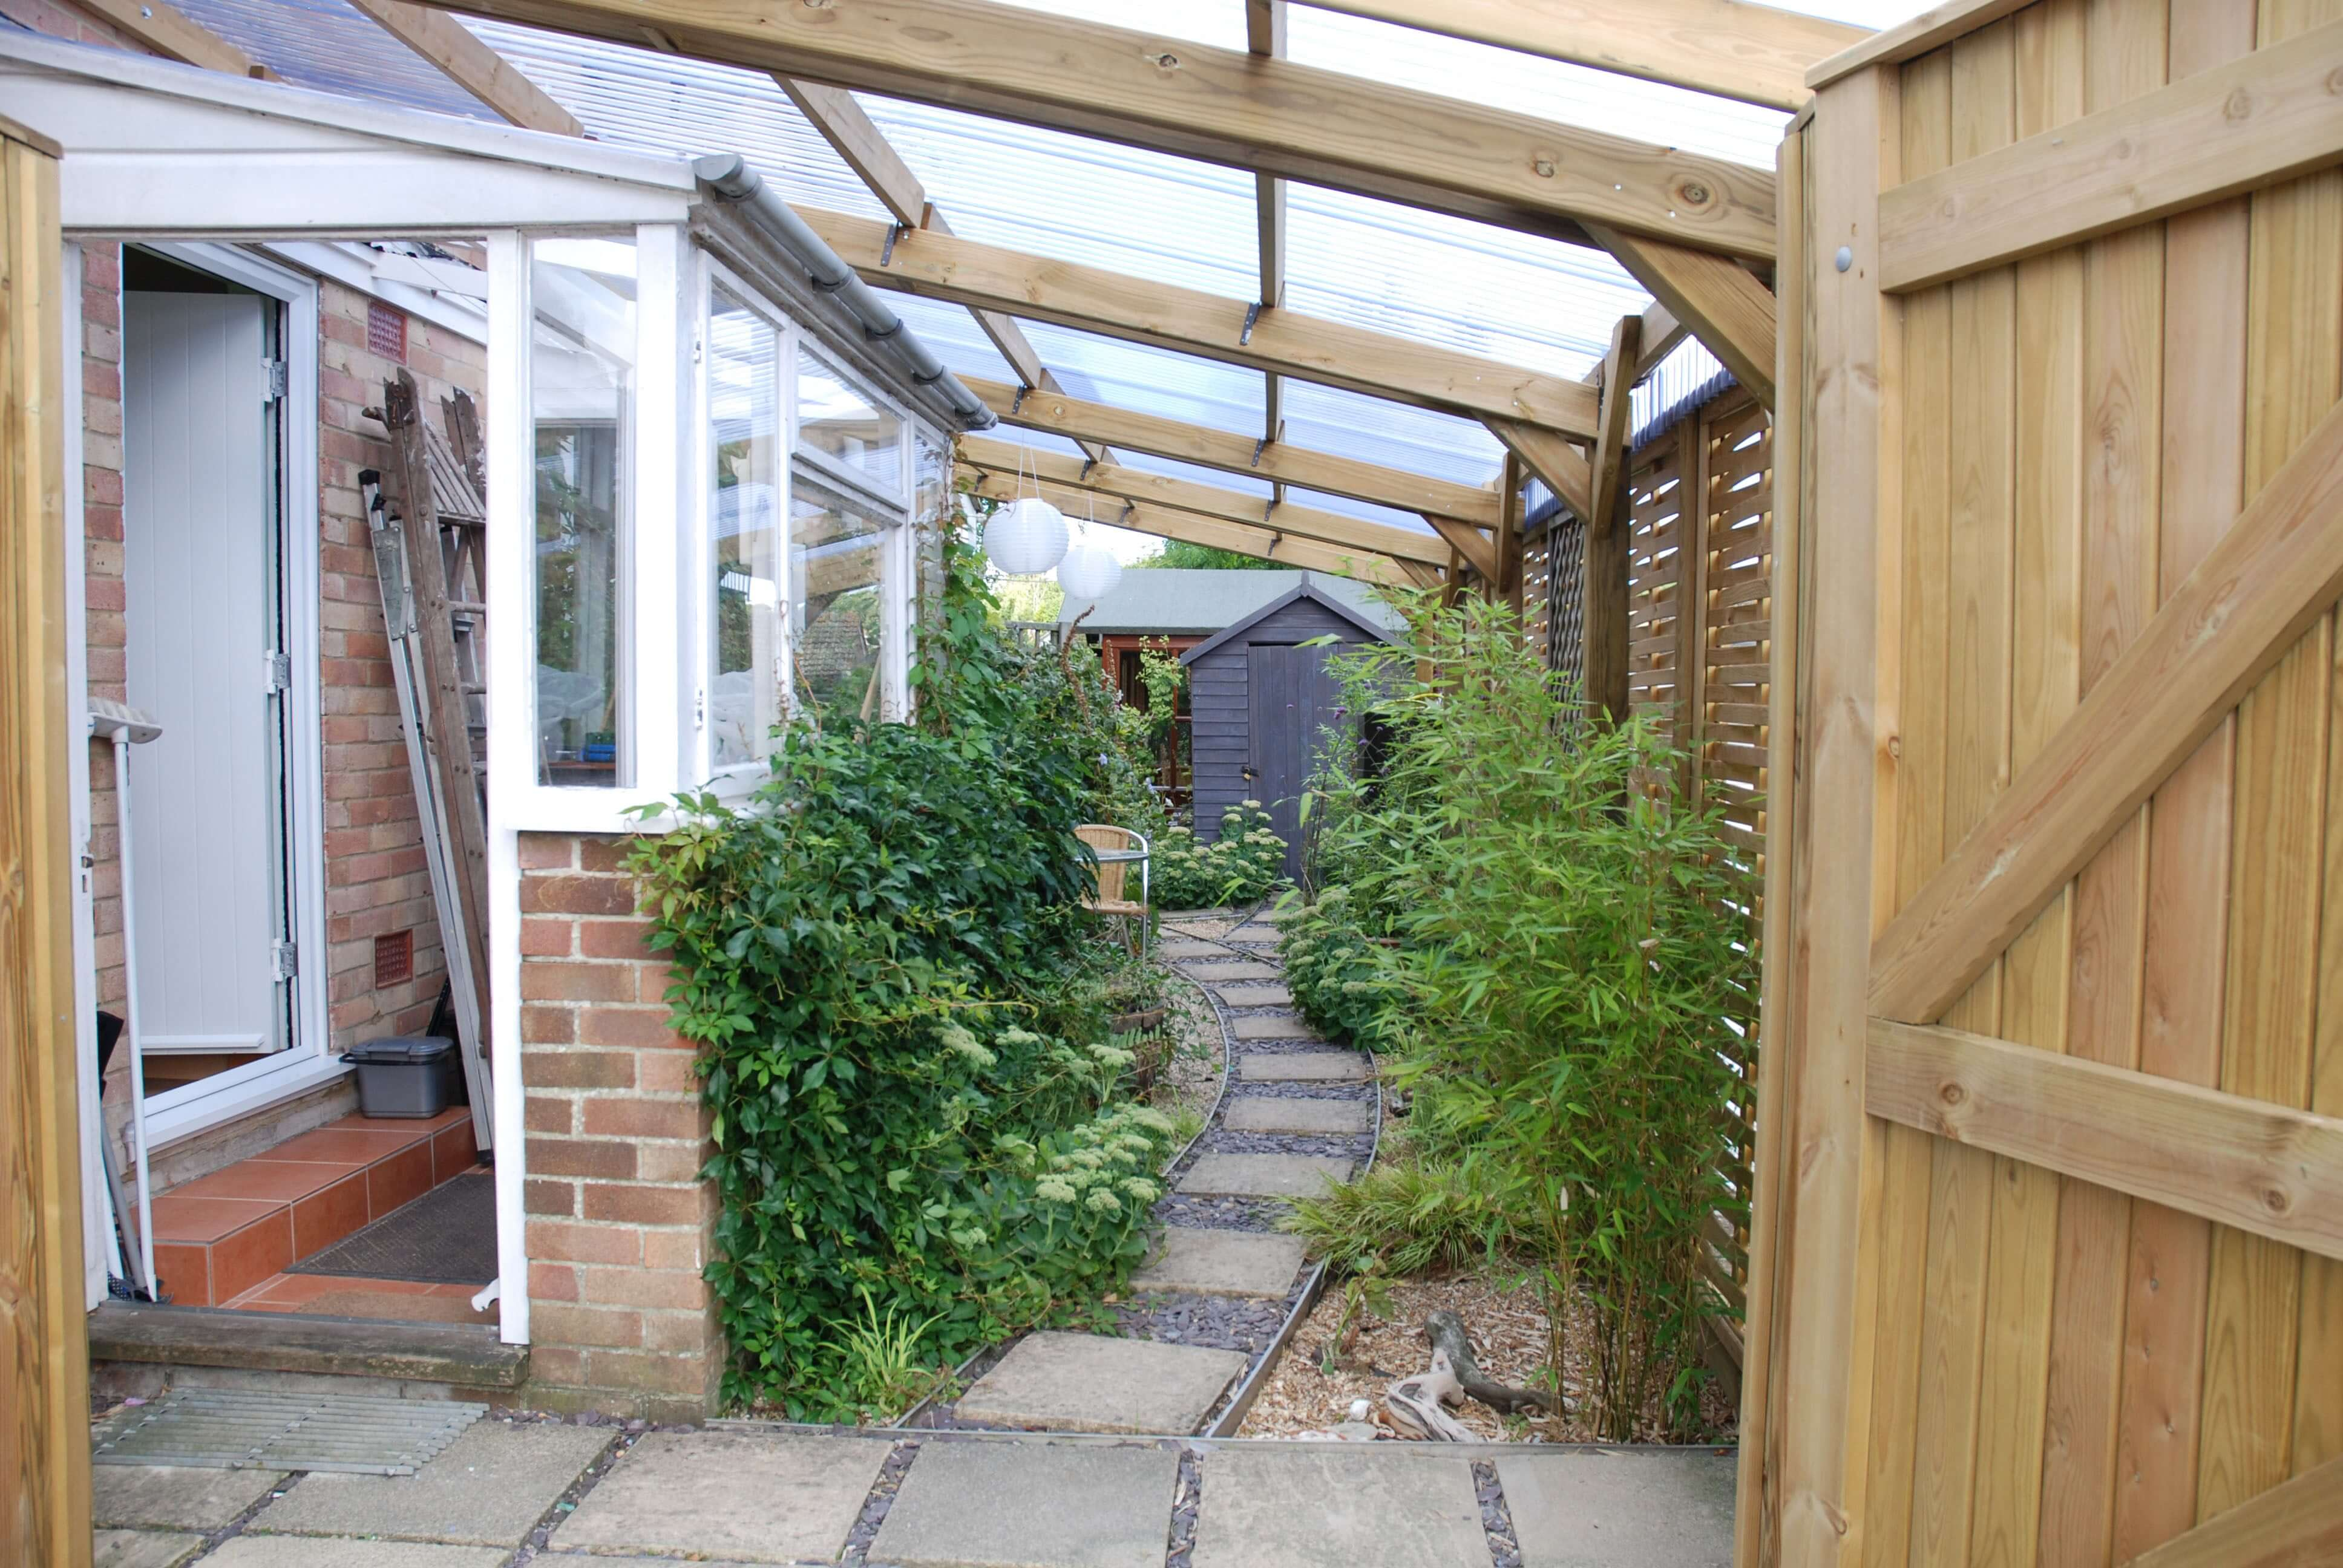 Pergola with plastic roofing on Woven fencing